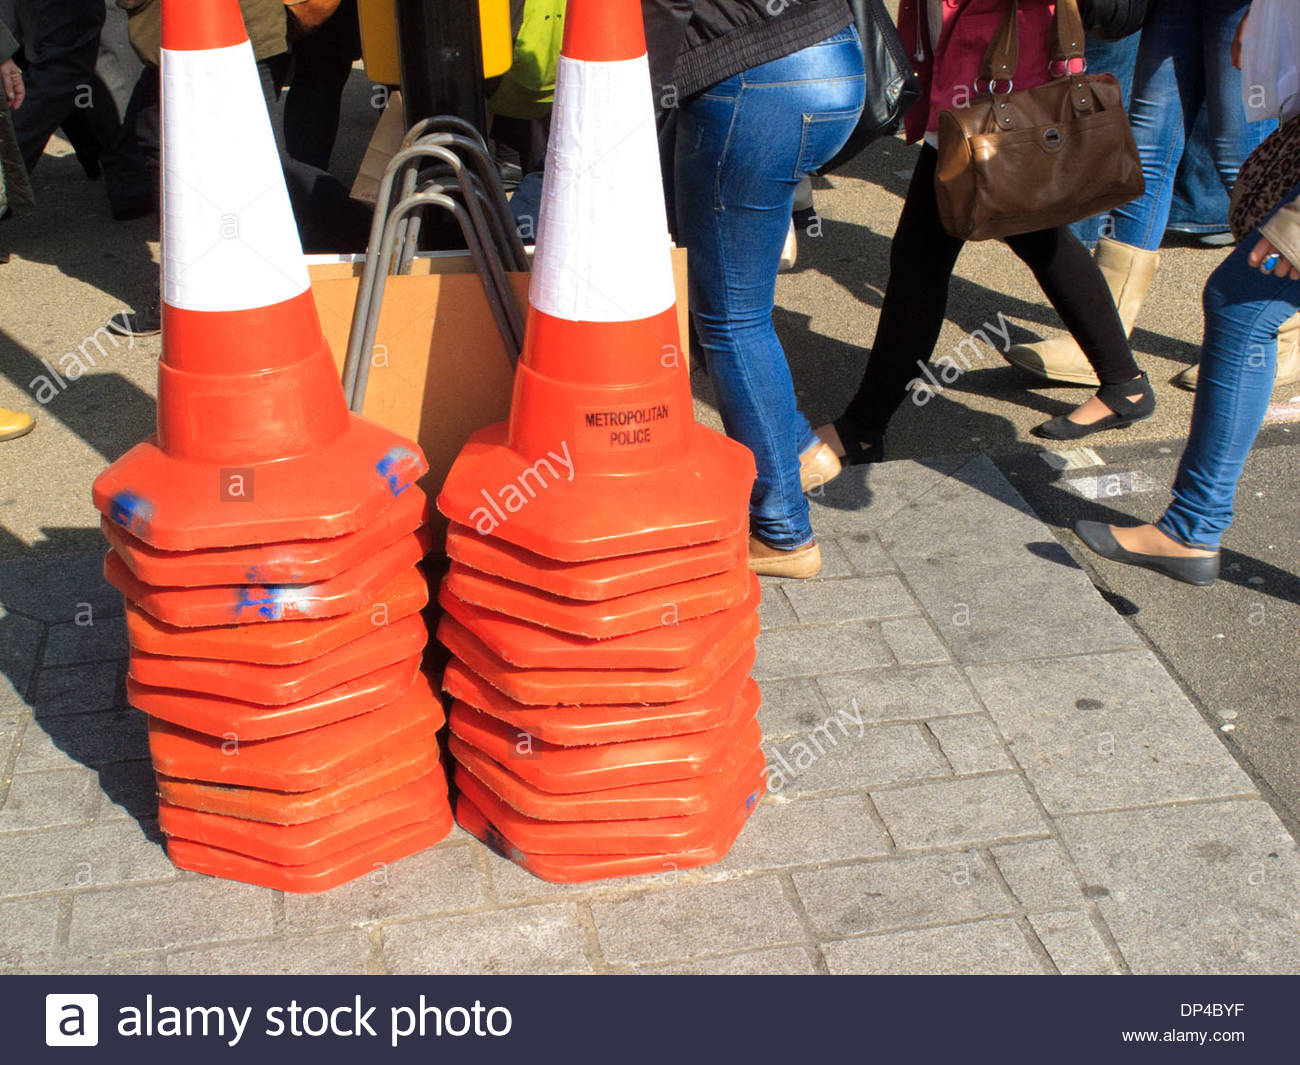 two stacks of traffic cones - Stock Image